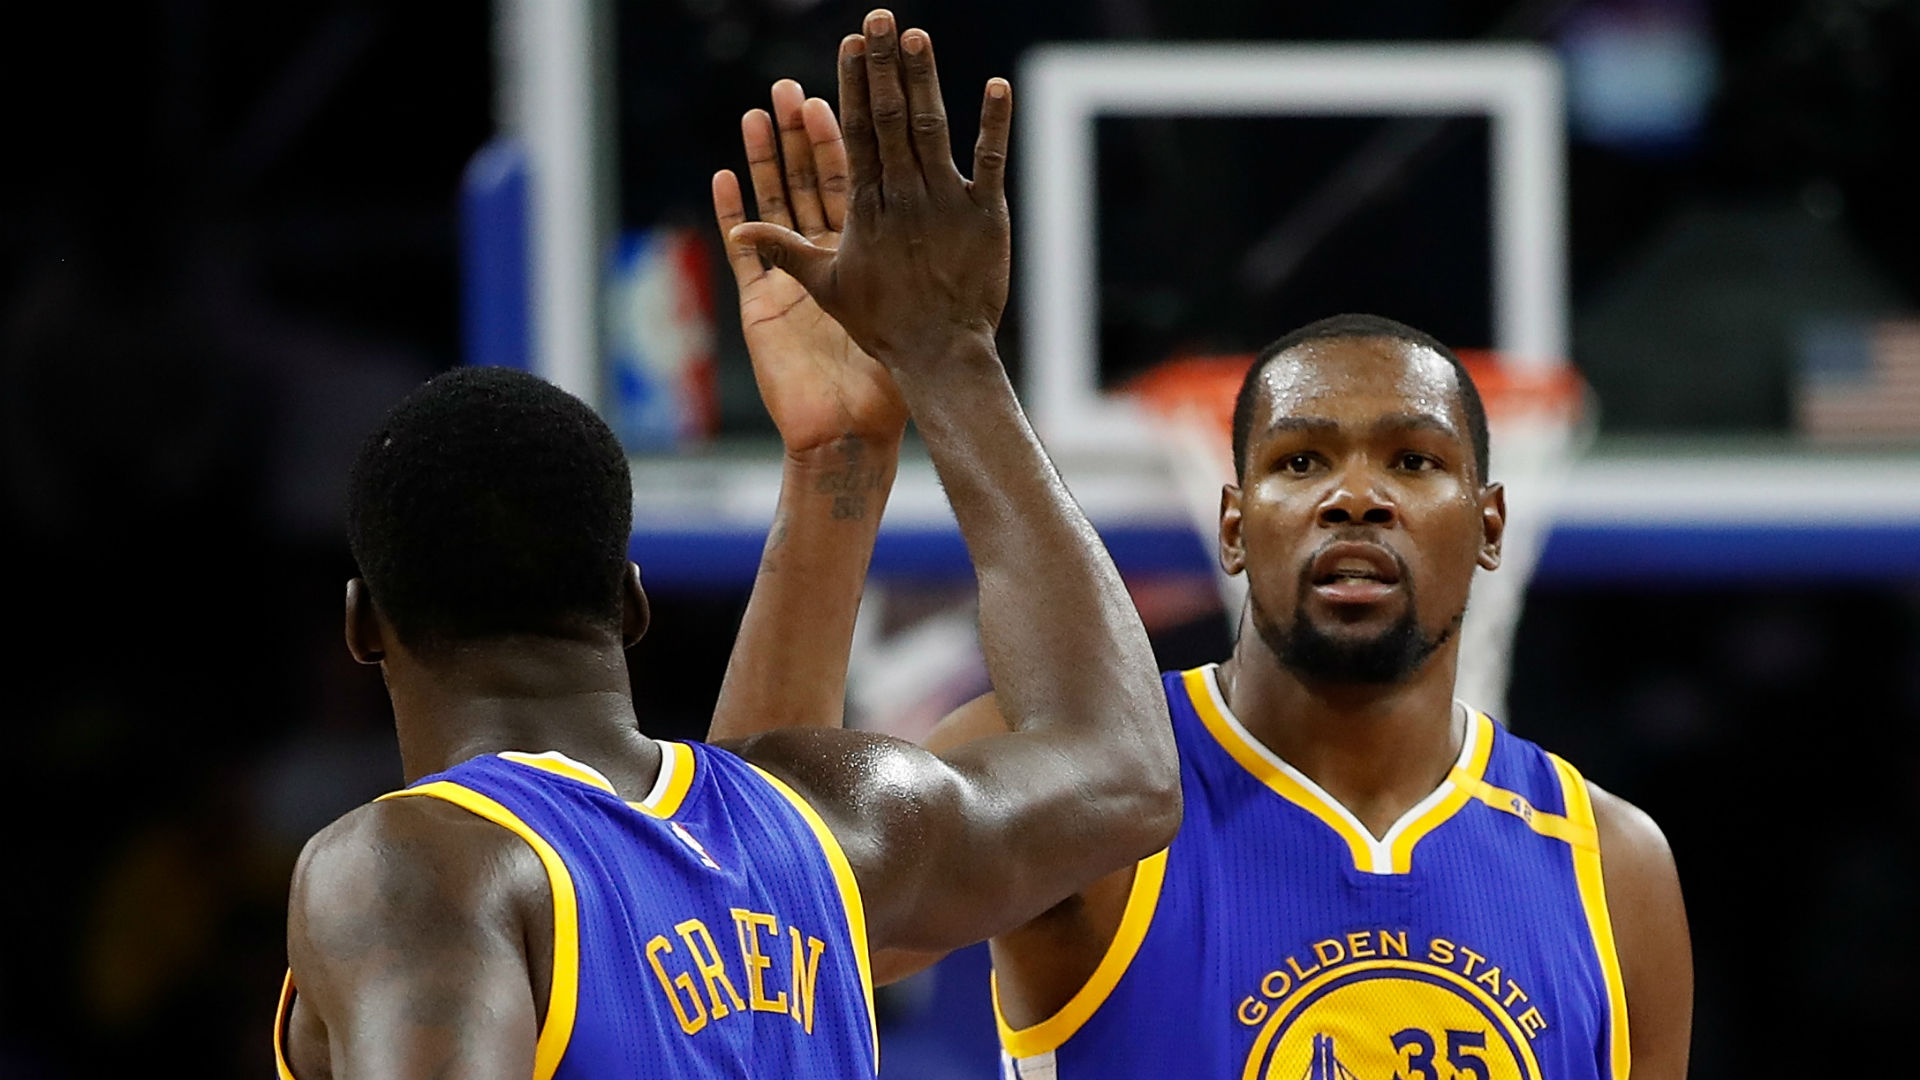 Warriors GM: Kevin Durant, Draymond Green in 'good place' after heated argument